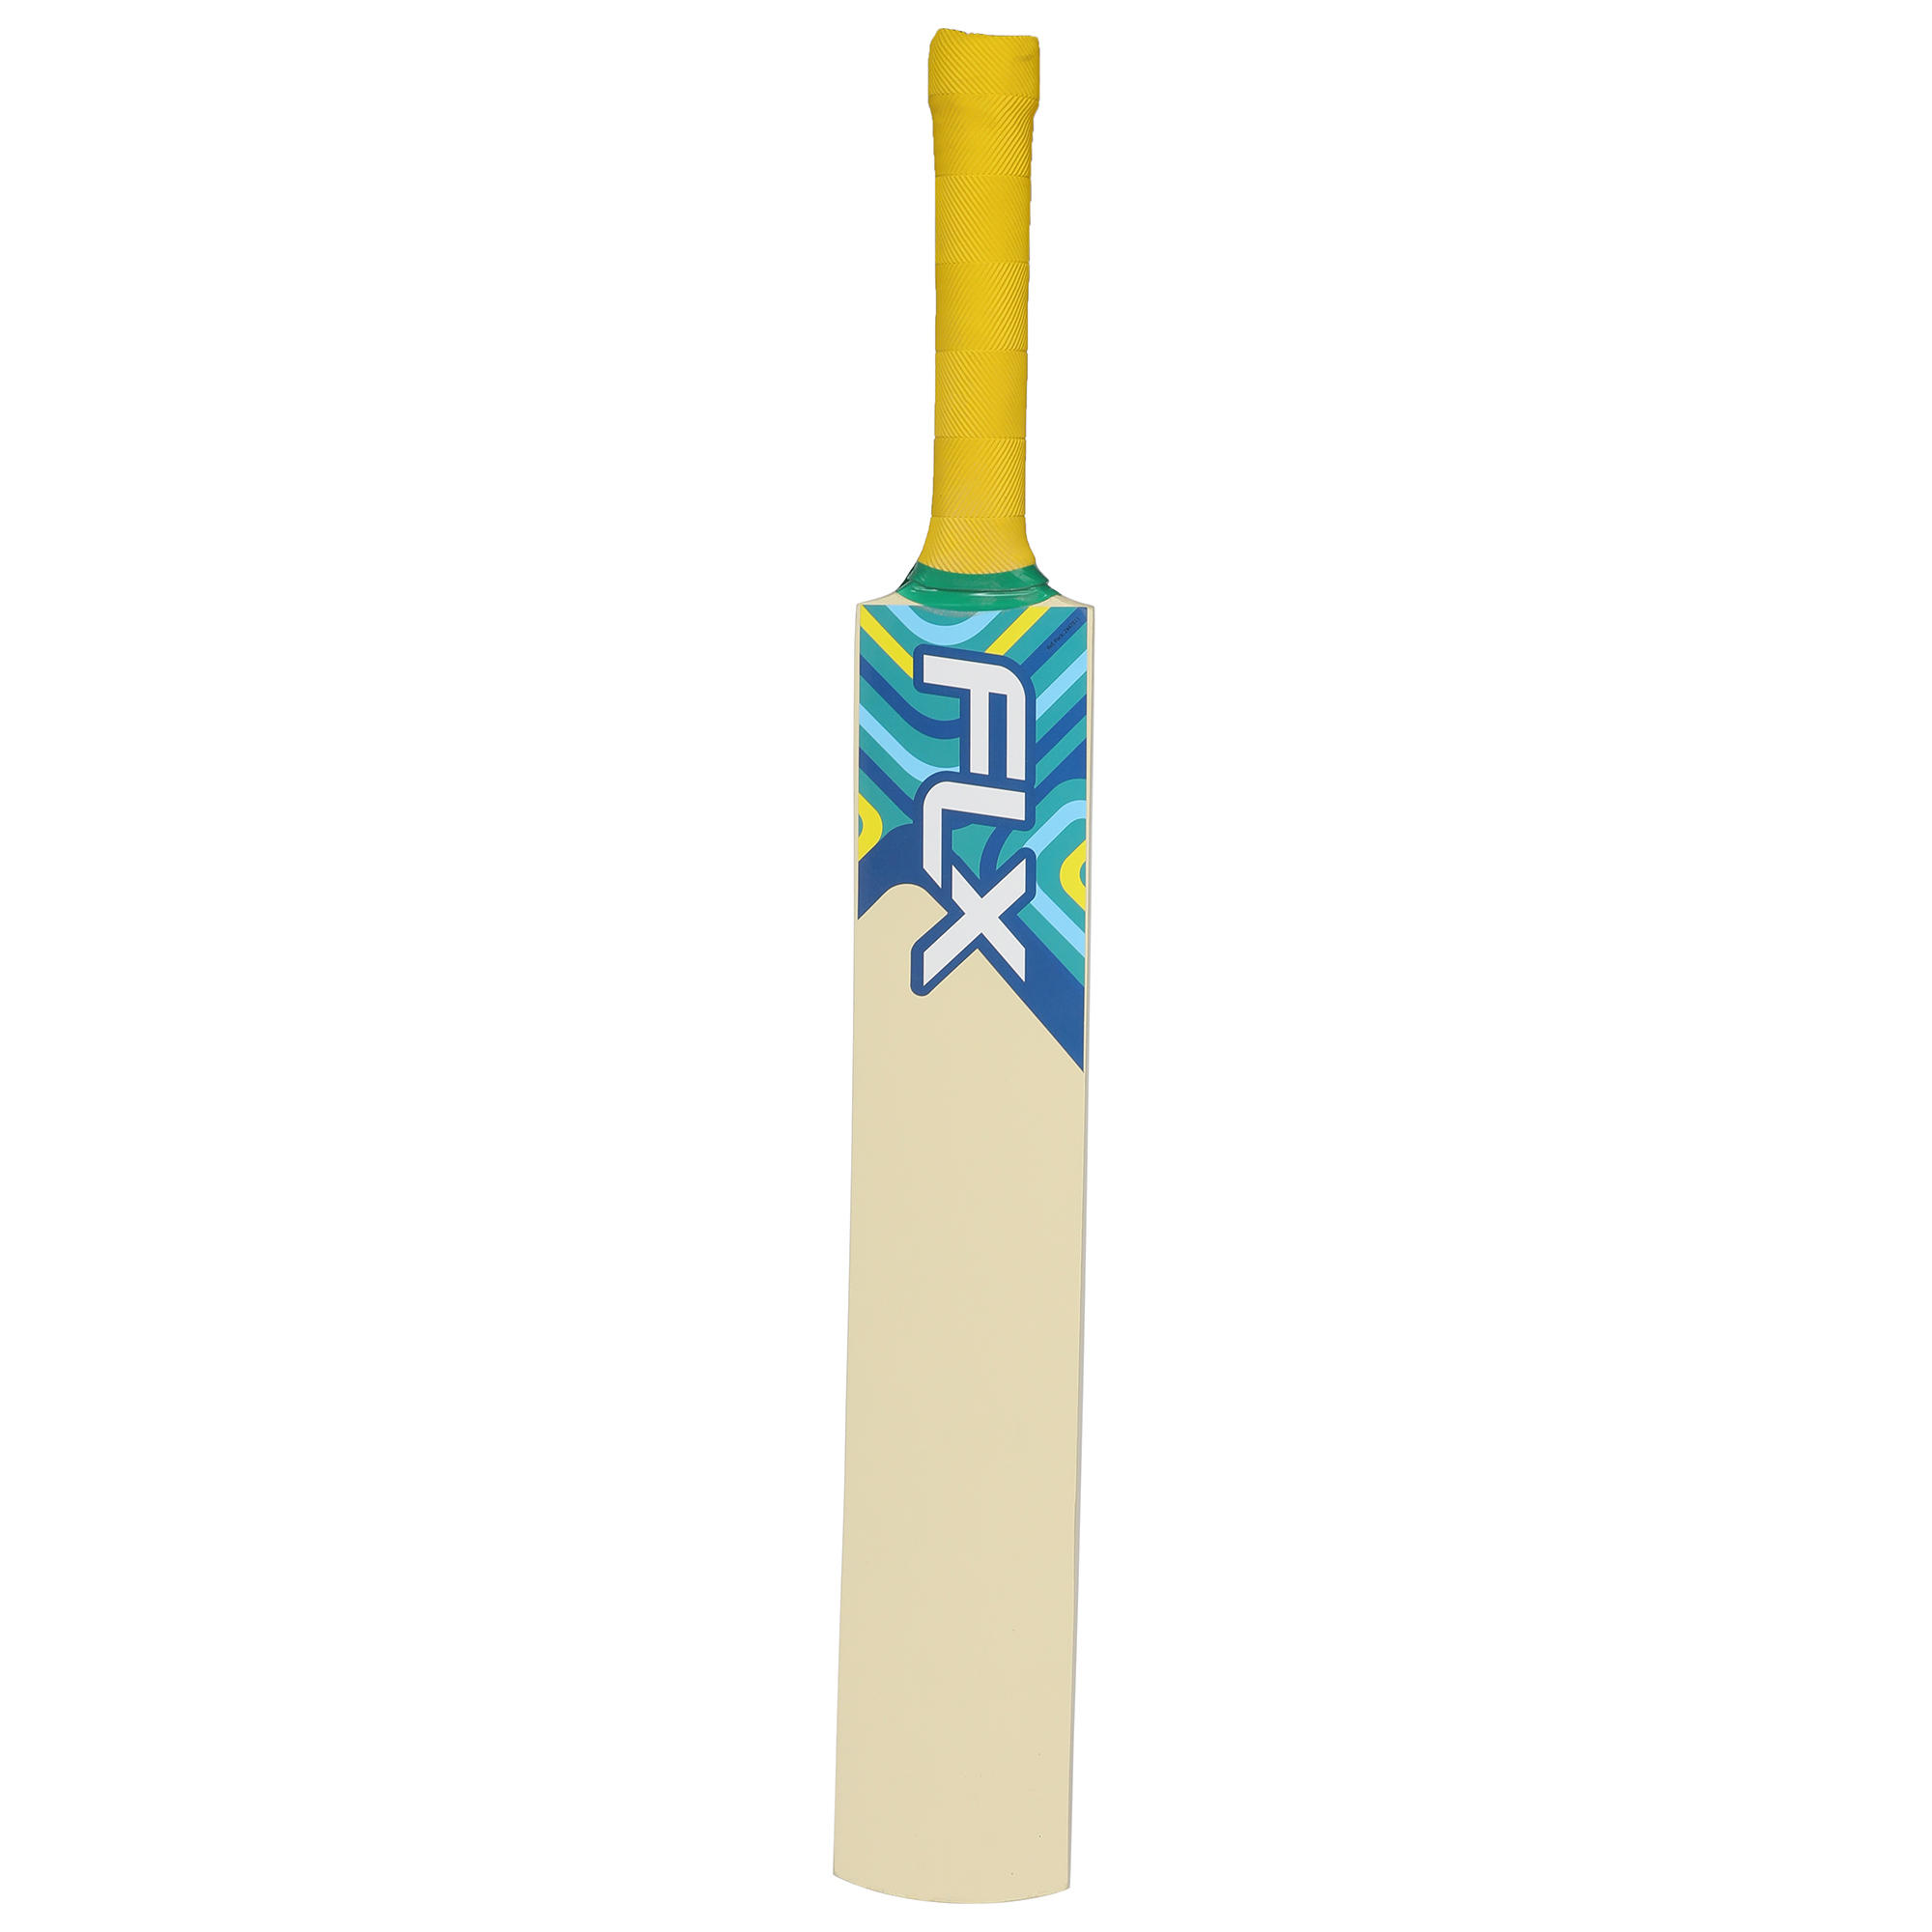 Buy Cricket Accessories 3 Item Small Pack Fibber Tape Roll Length 50 Meter Anti Scuff Water Proof Tape /& 2 Octopus Bat Grip for Cricket Bat Get 1 Scuff Sheet Free